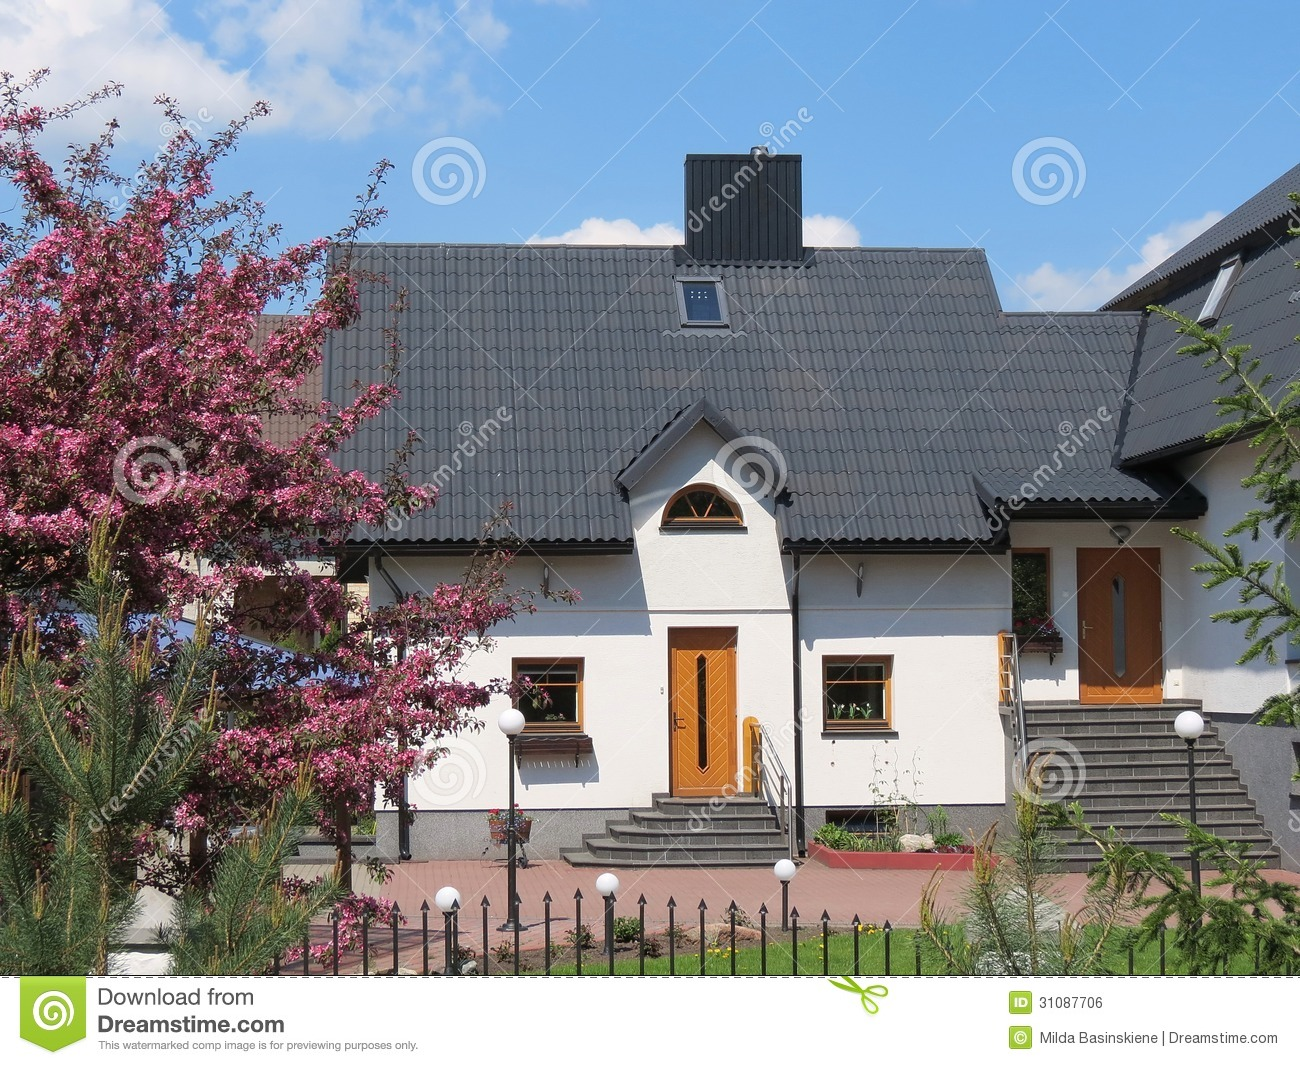 White house royalty free stock image image 31087706 for Black roof house